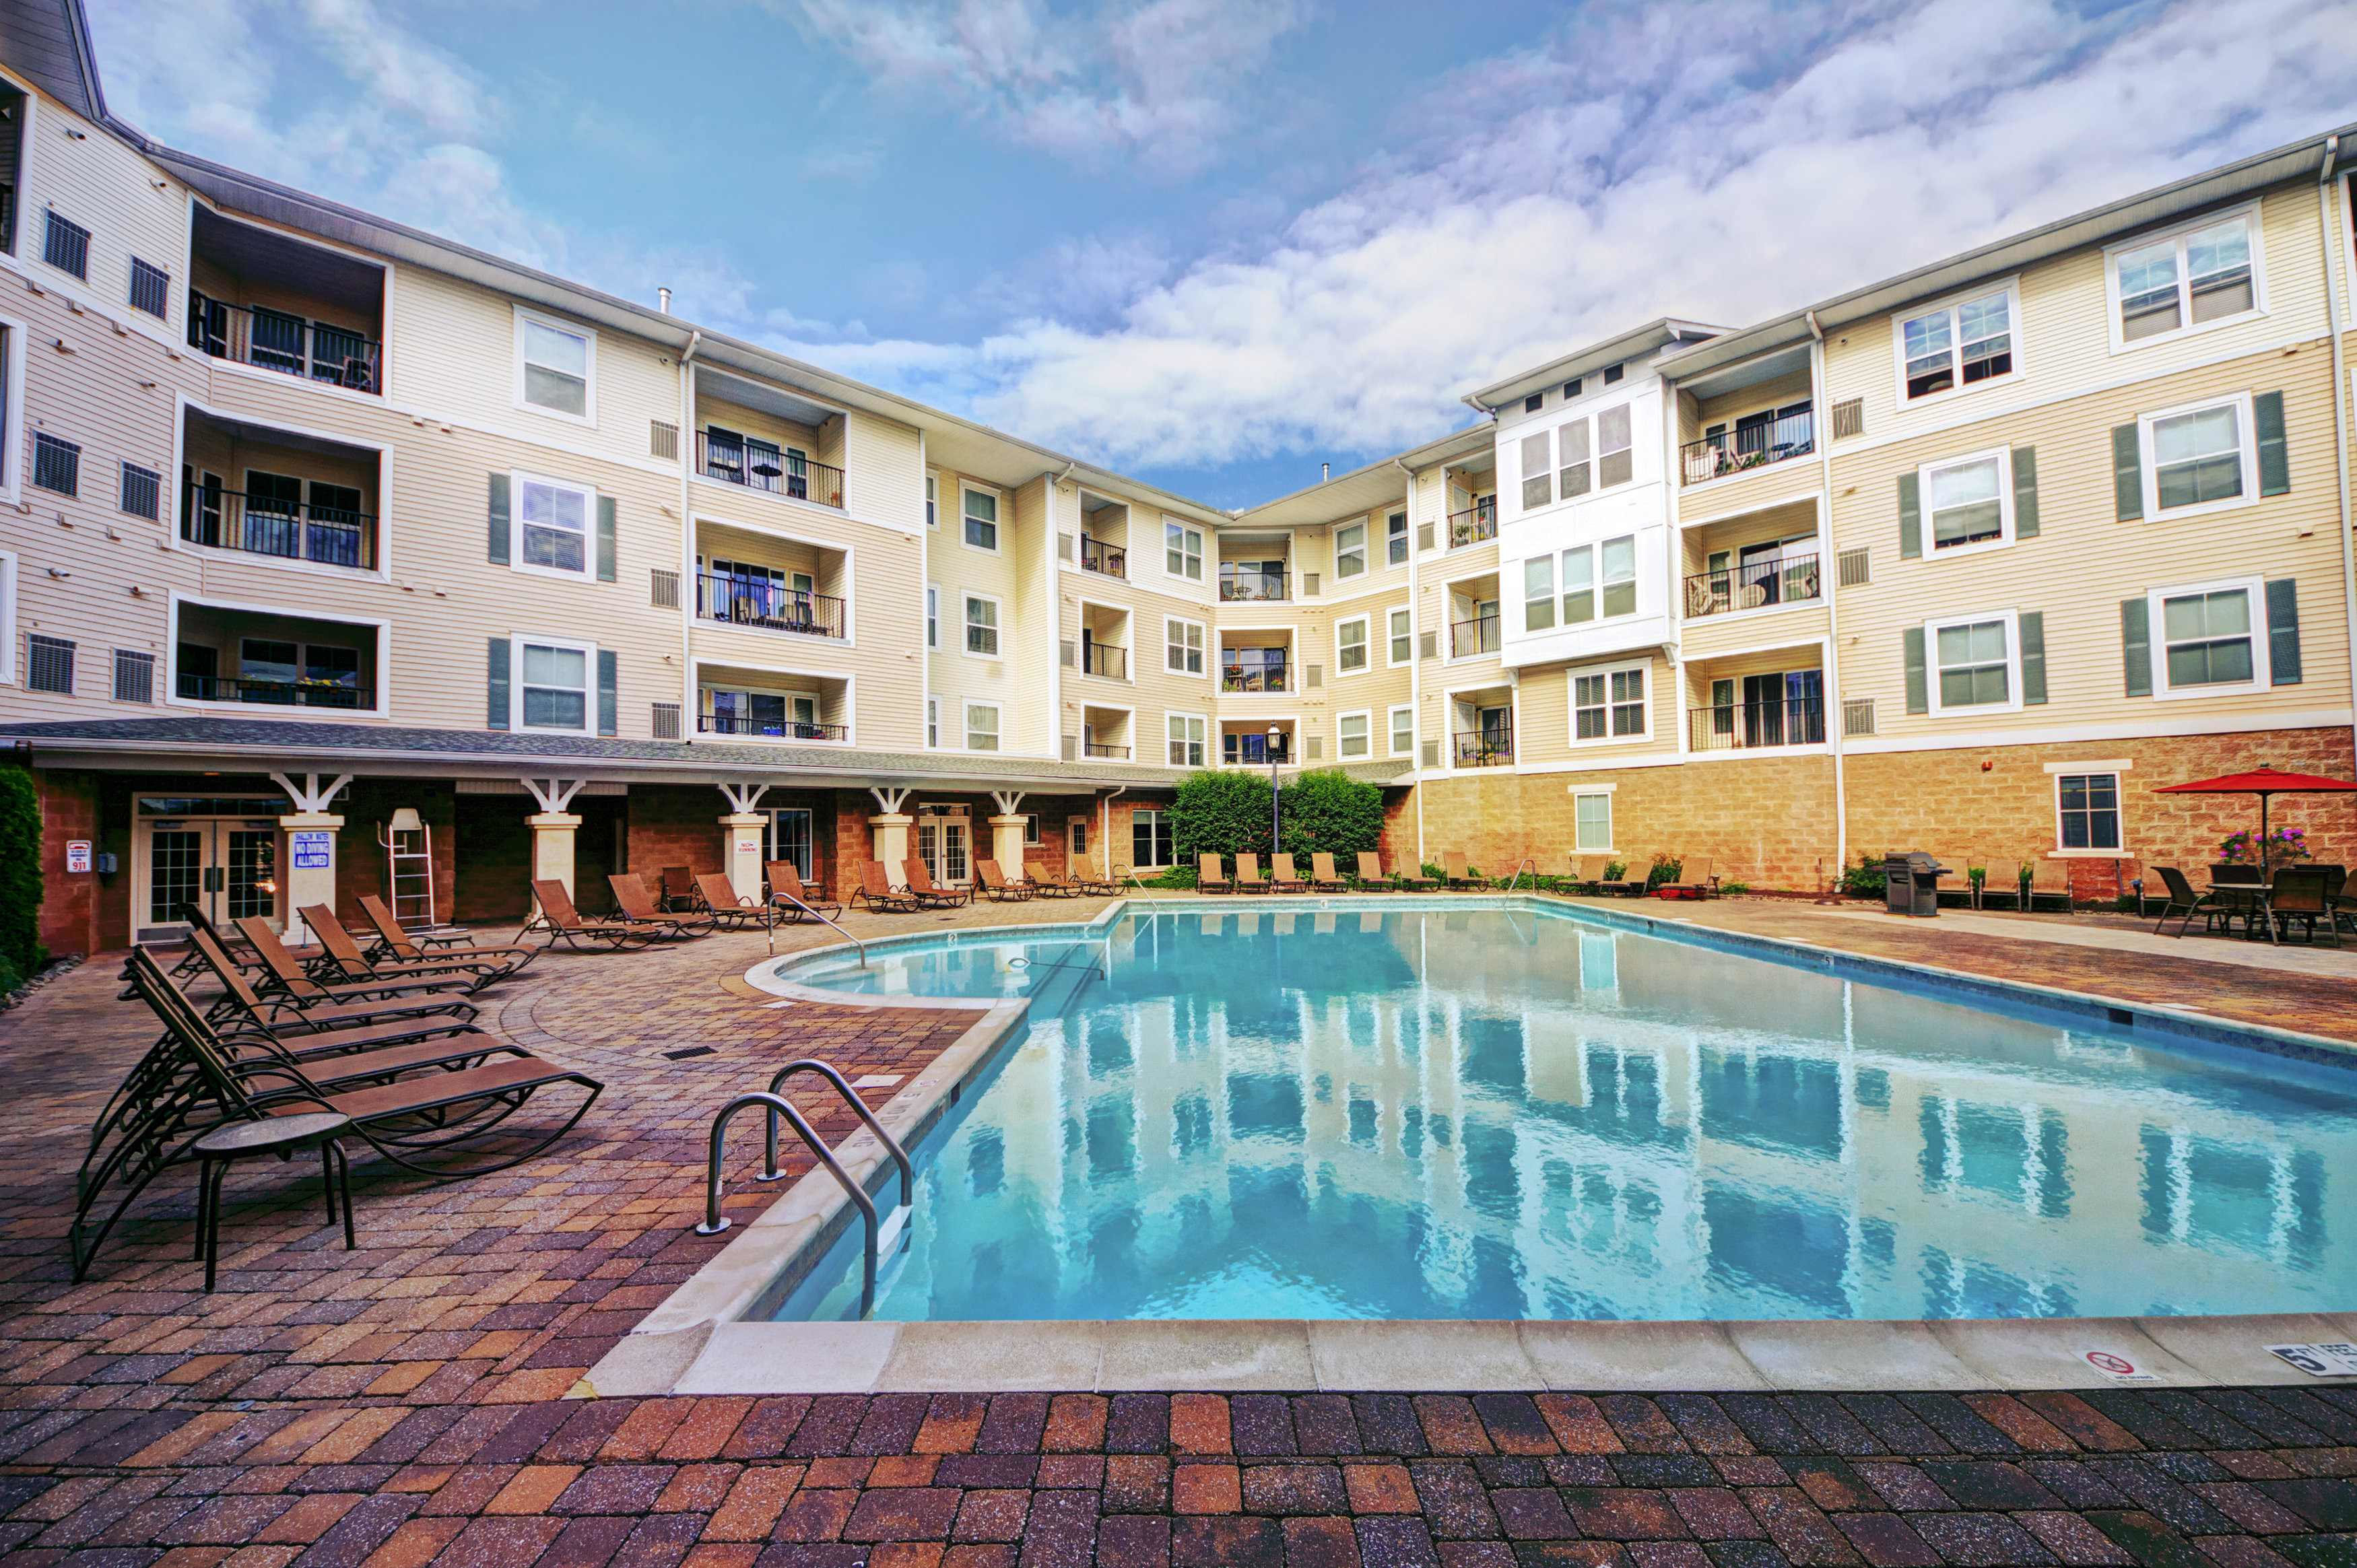 20 best apartments in newark nj with pictures